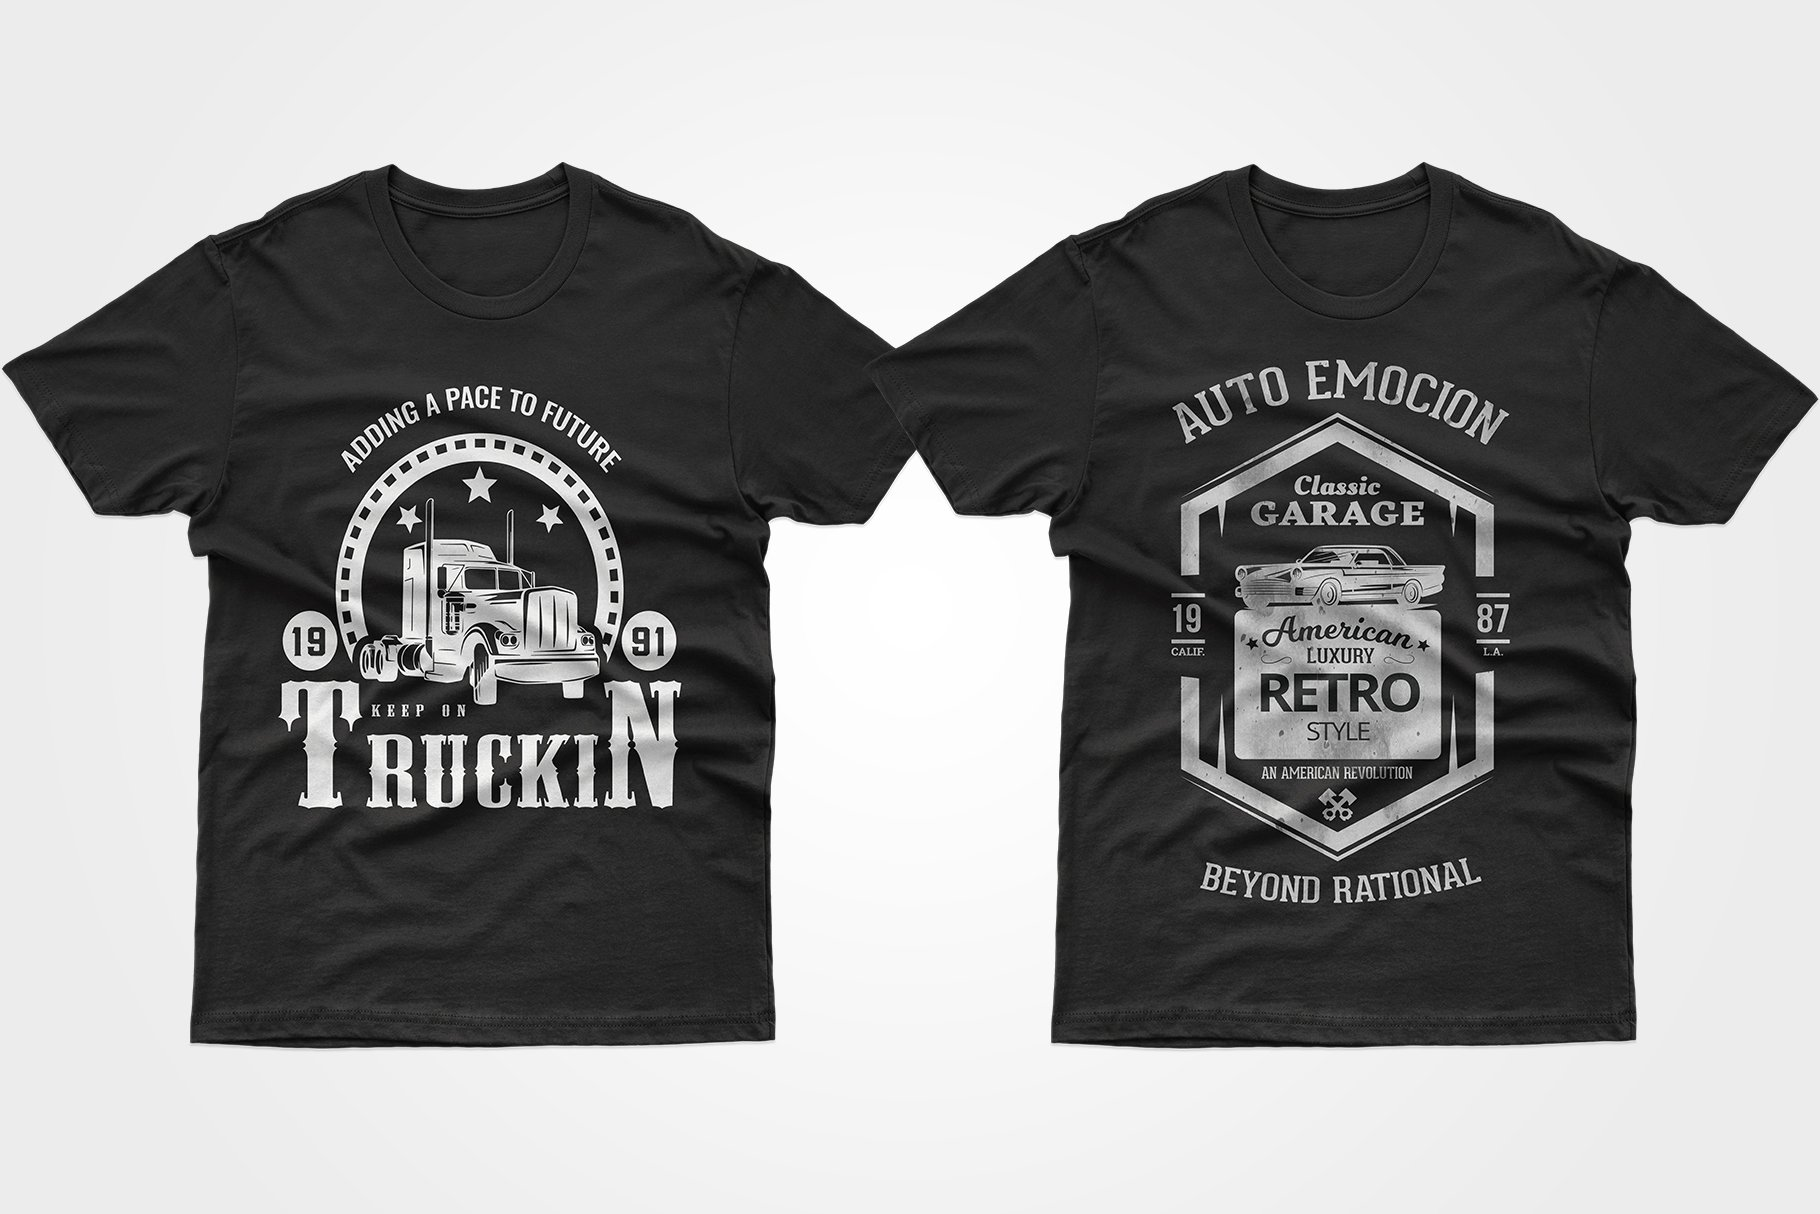 Two black T-shirts - one with a large truck, the other as a poster with a vintage car.